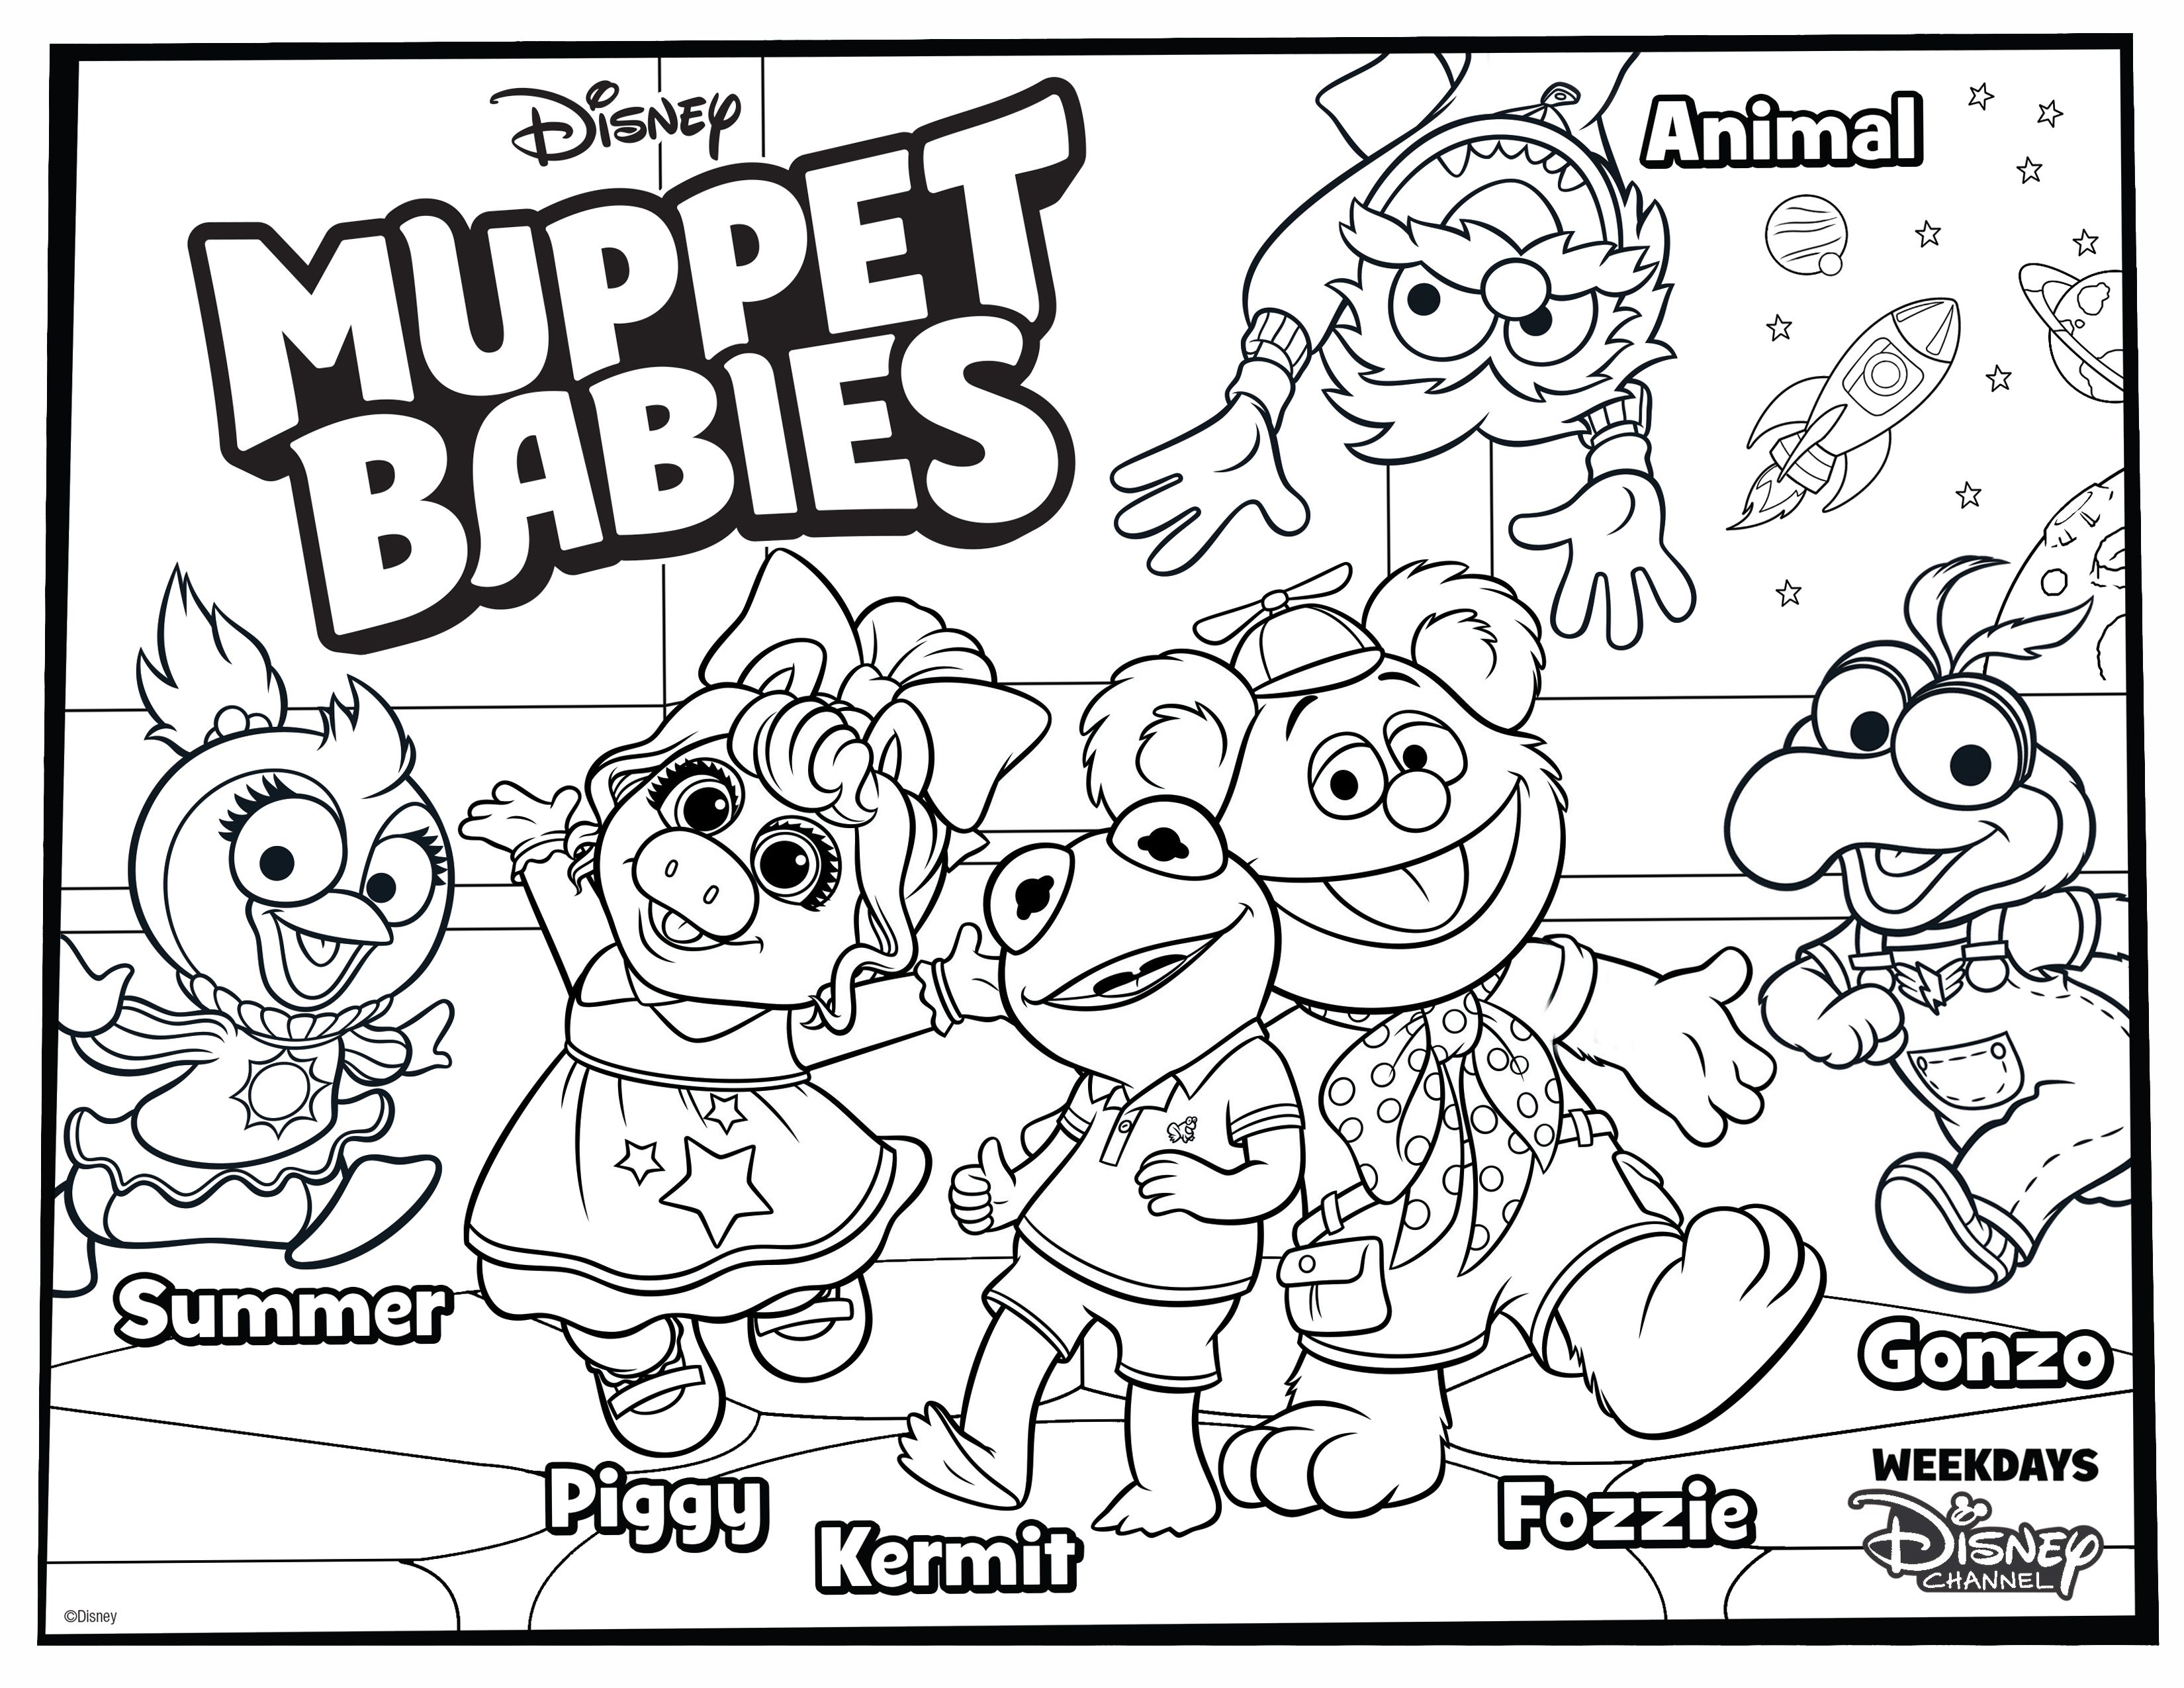 Have Some Family Fun With This Muppet Babies Coloring Page Baby Coloring Pages Muppet Babies Disney Coloring Pages